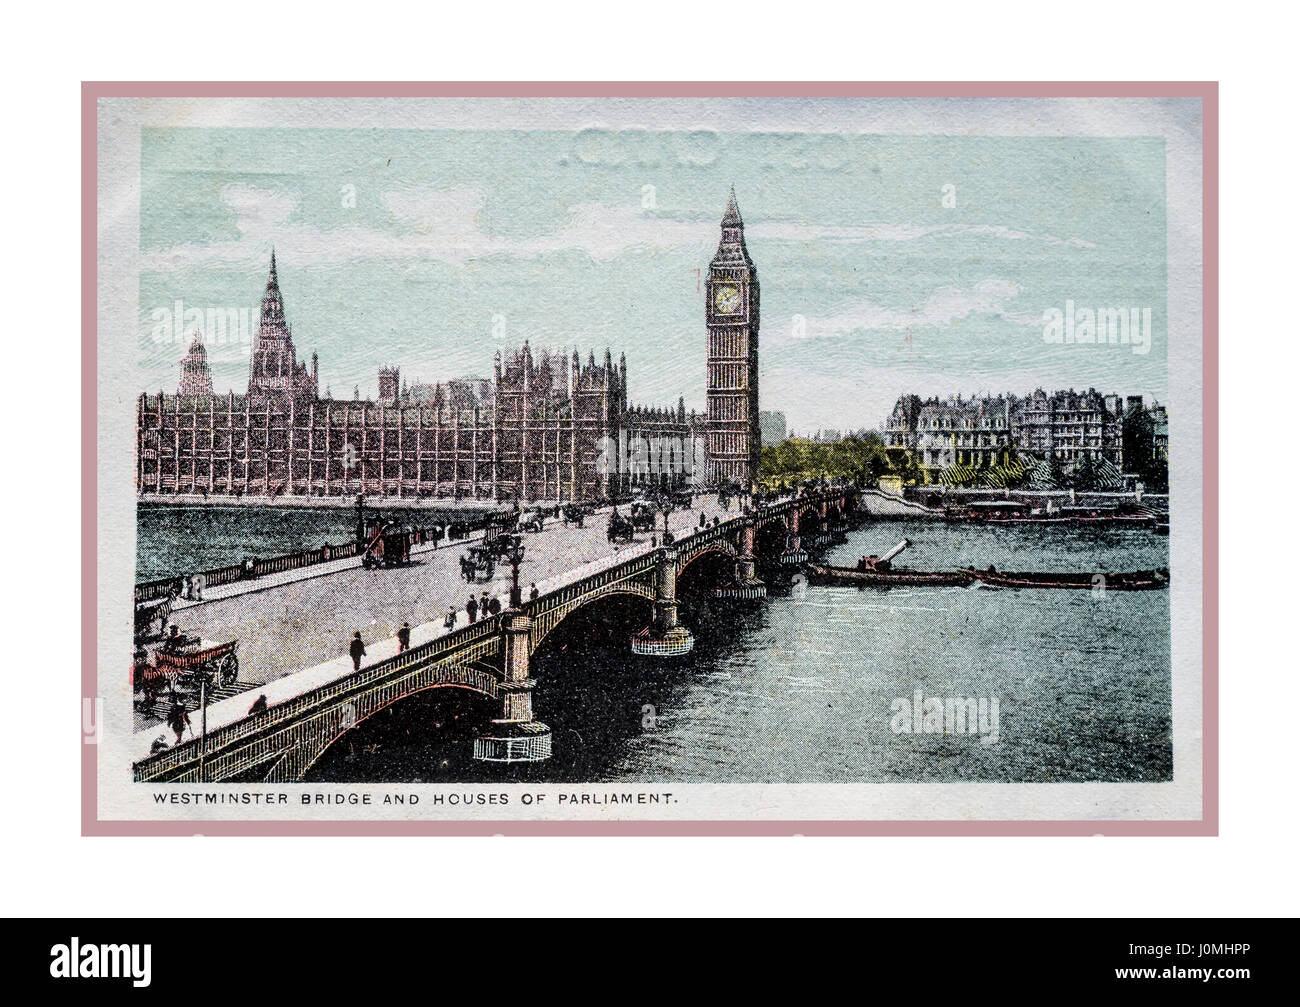 Vintage 1900's travel retro colour postcard of Westminster Bridge and Houses of Parliament London UK - Stock Image